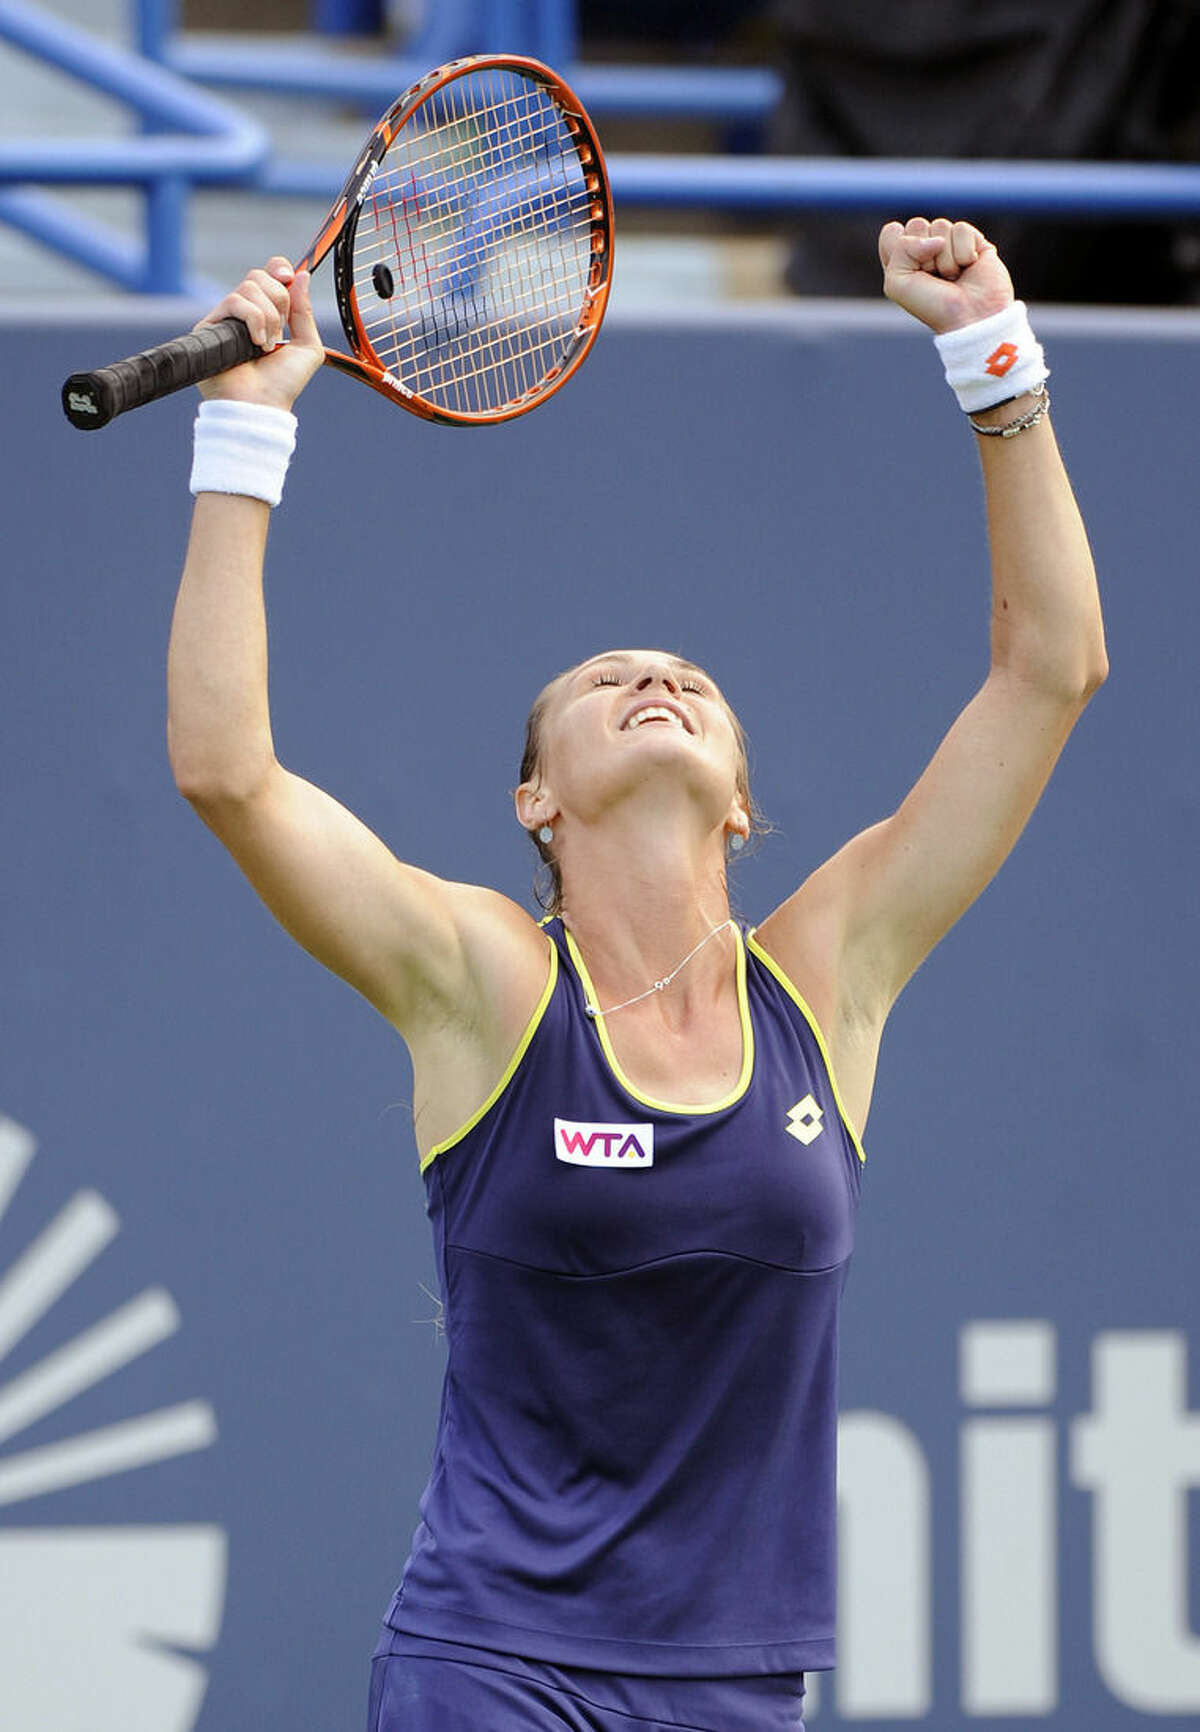 Magdalena Rybarikova, of Slovakia, celebrates after her 7-5, 0-6, 6-4 victory over Alison Riske, of the United States, during a quarterfinal match at the New Haven Open tennis tournament in New Haven, Conn., on Thursday, Aug. 21, 2014. (AP Photo/Fred Beckham)